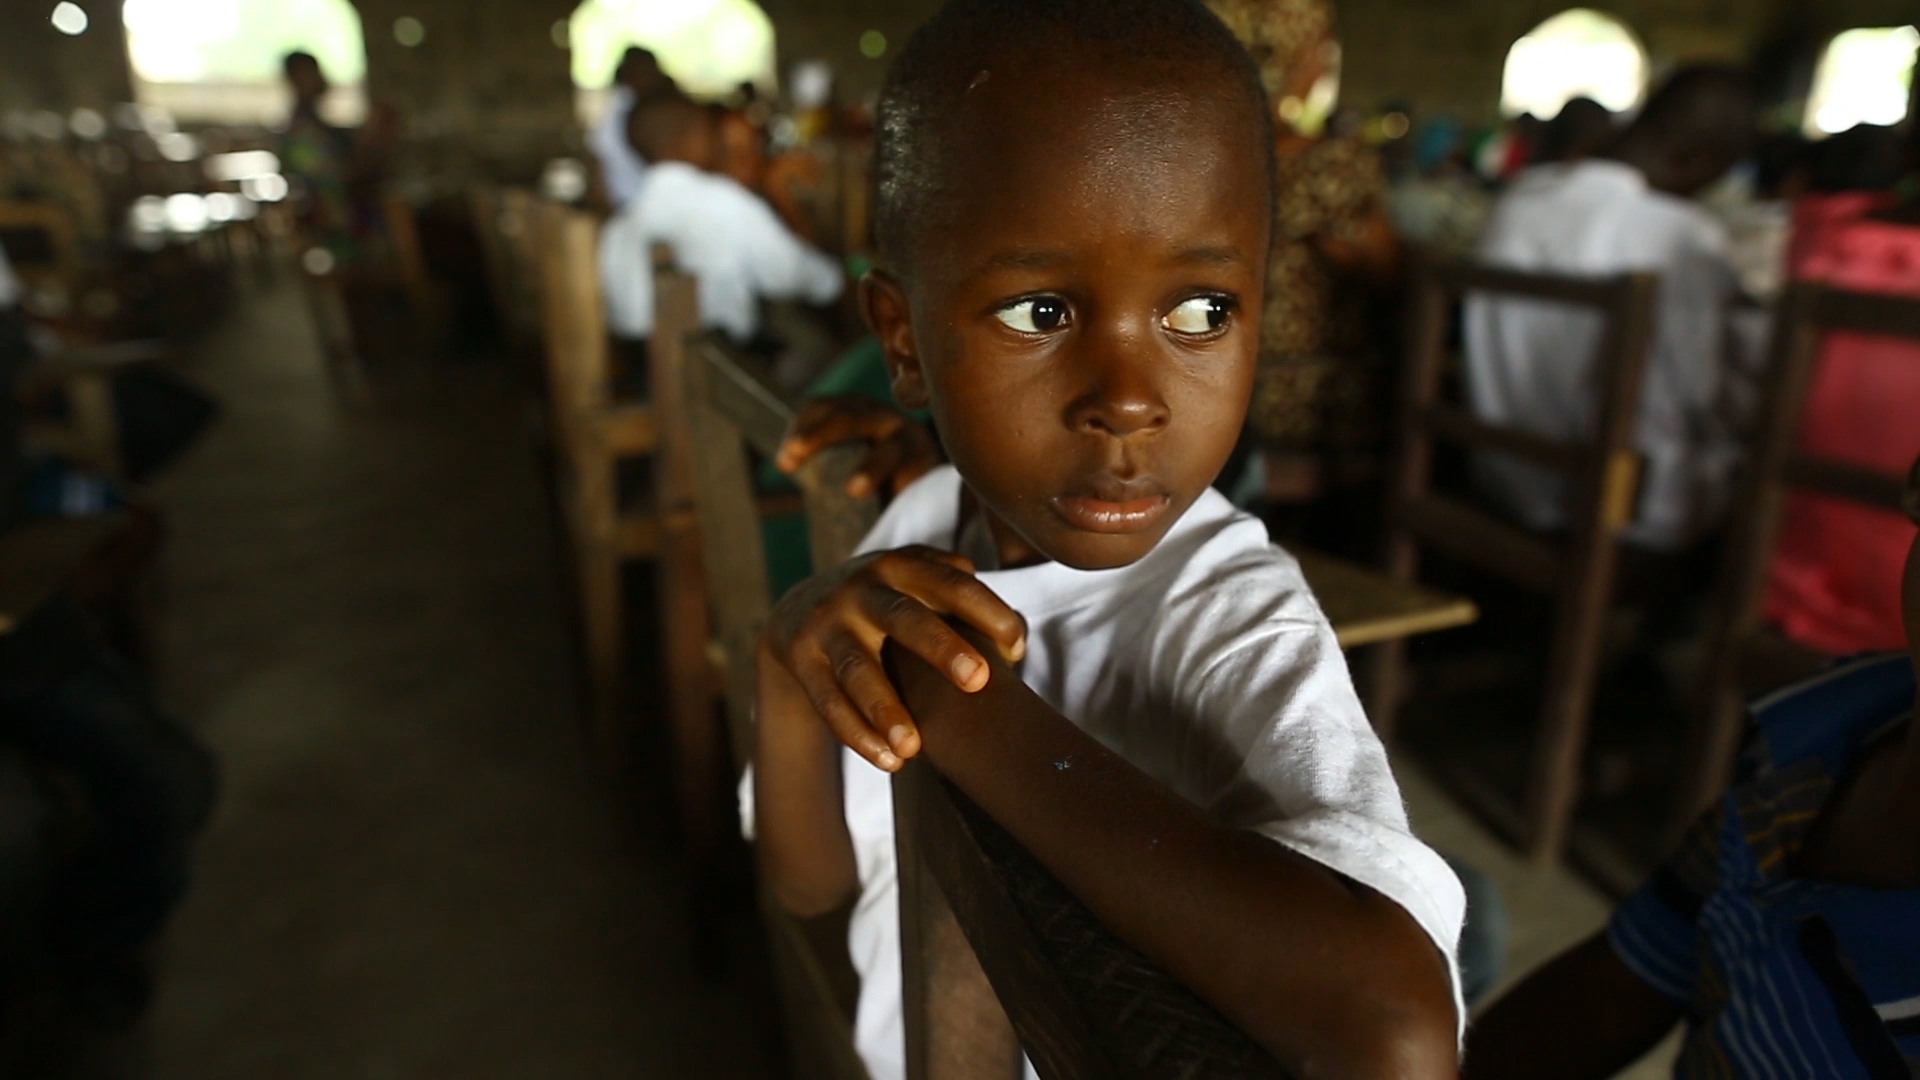 Six-year-old Ebola survivor Patrick Poopei attends Sunday service at his local church in Paynesville, Liberia. (Photo: #ISurvivedEbola/Flickr)